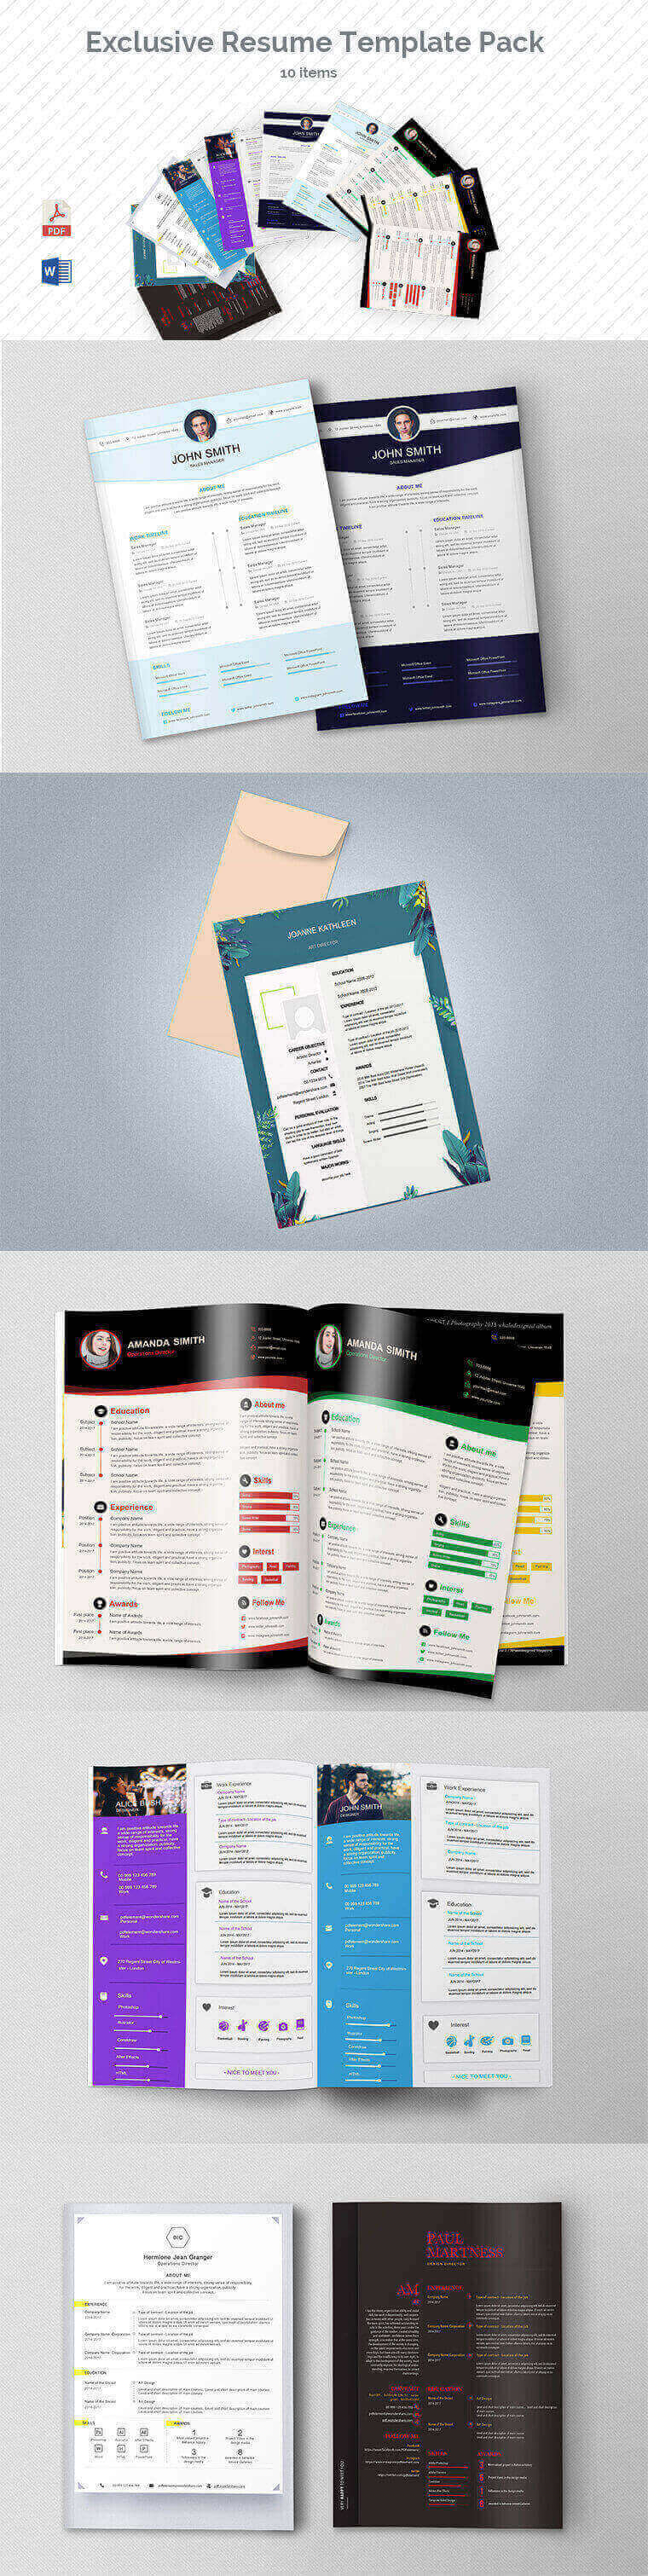 Deluxe Resume Template Pack (10 Items)